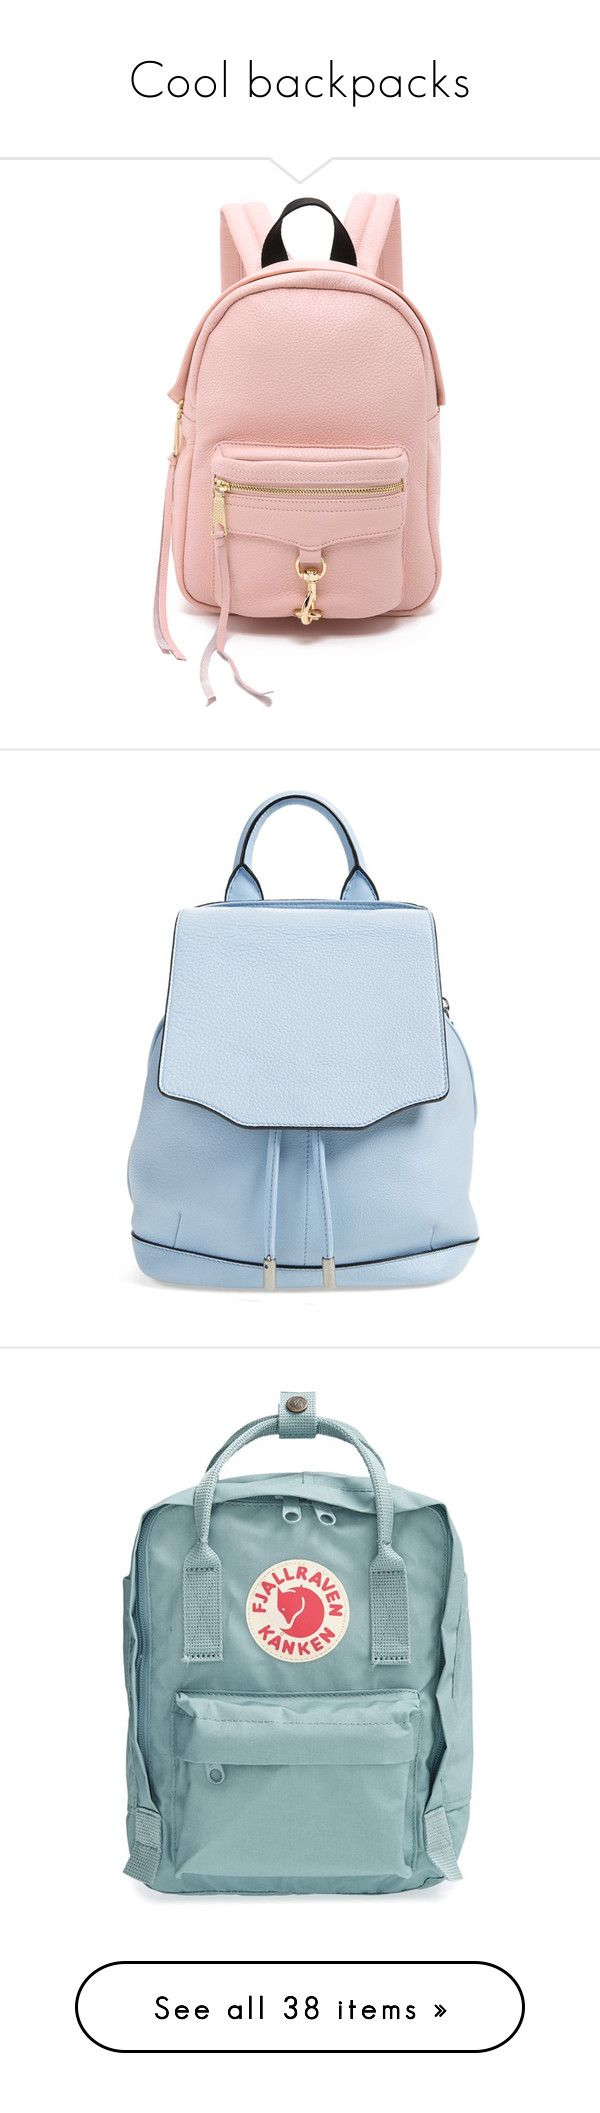 25  best ideas about Cool Backpacks on Pinterest | Cool backpacks ...